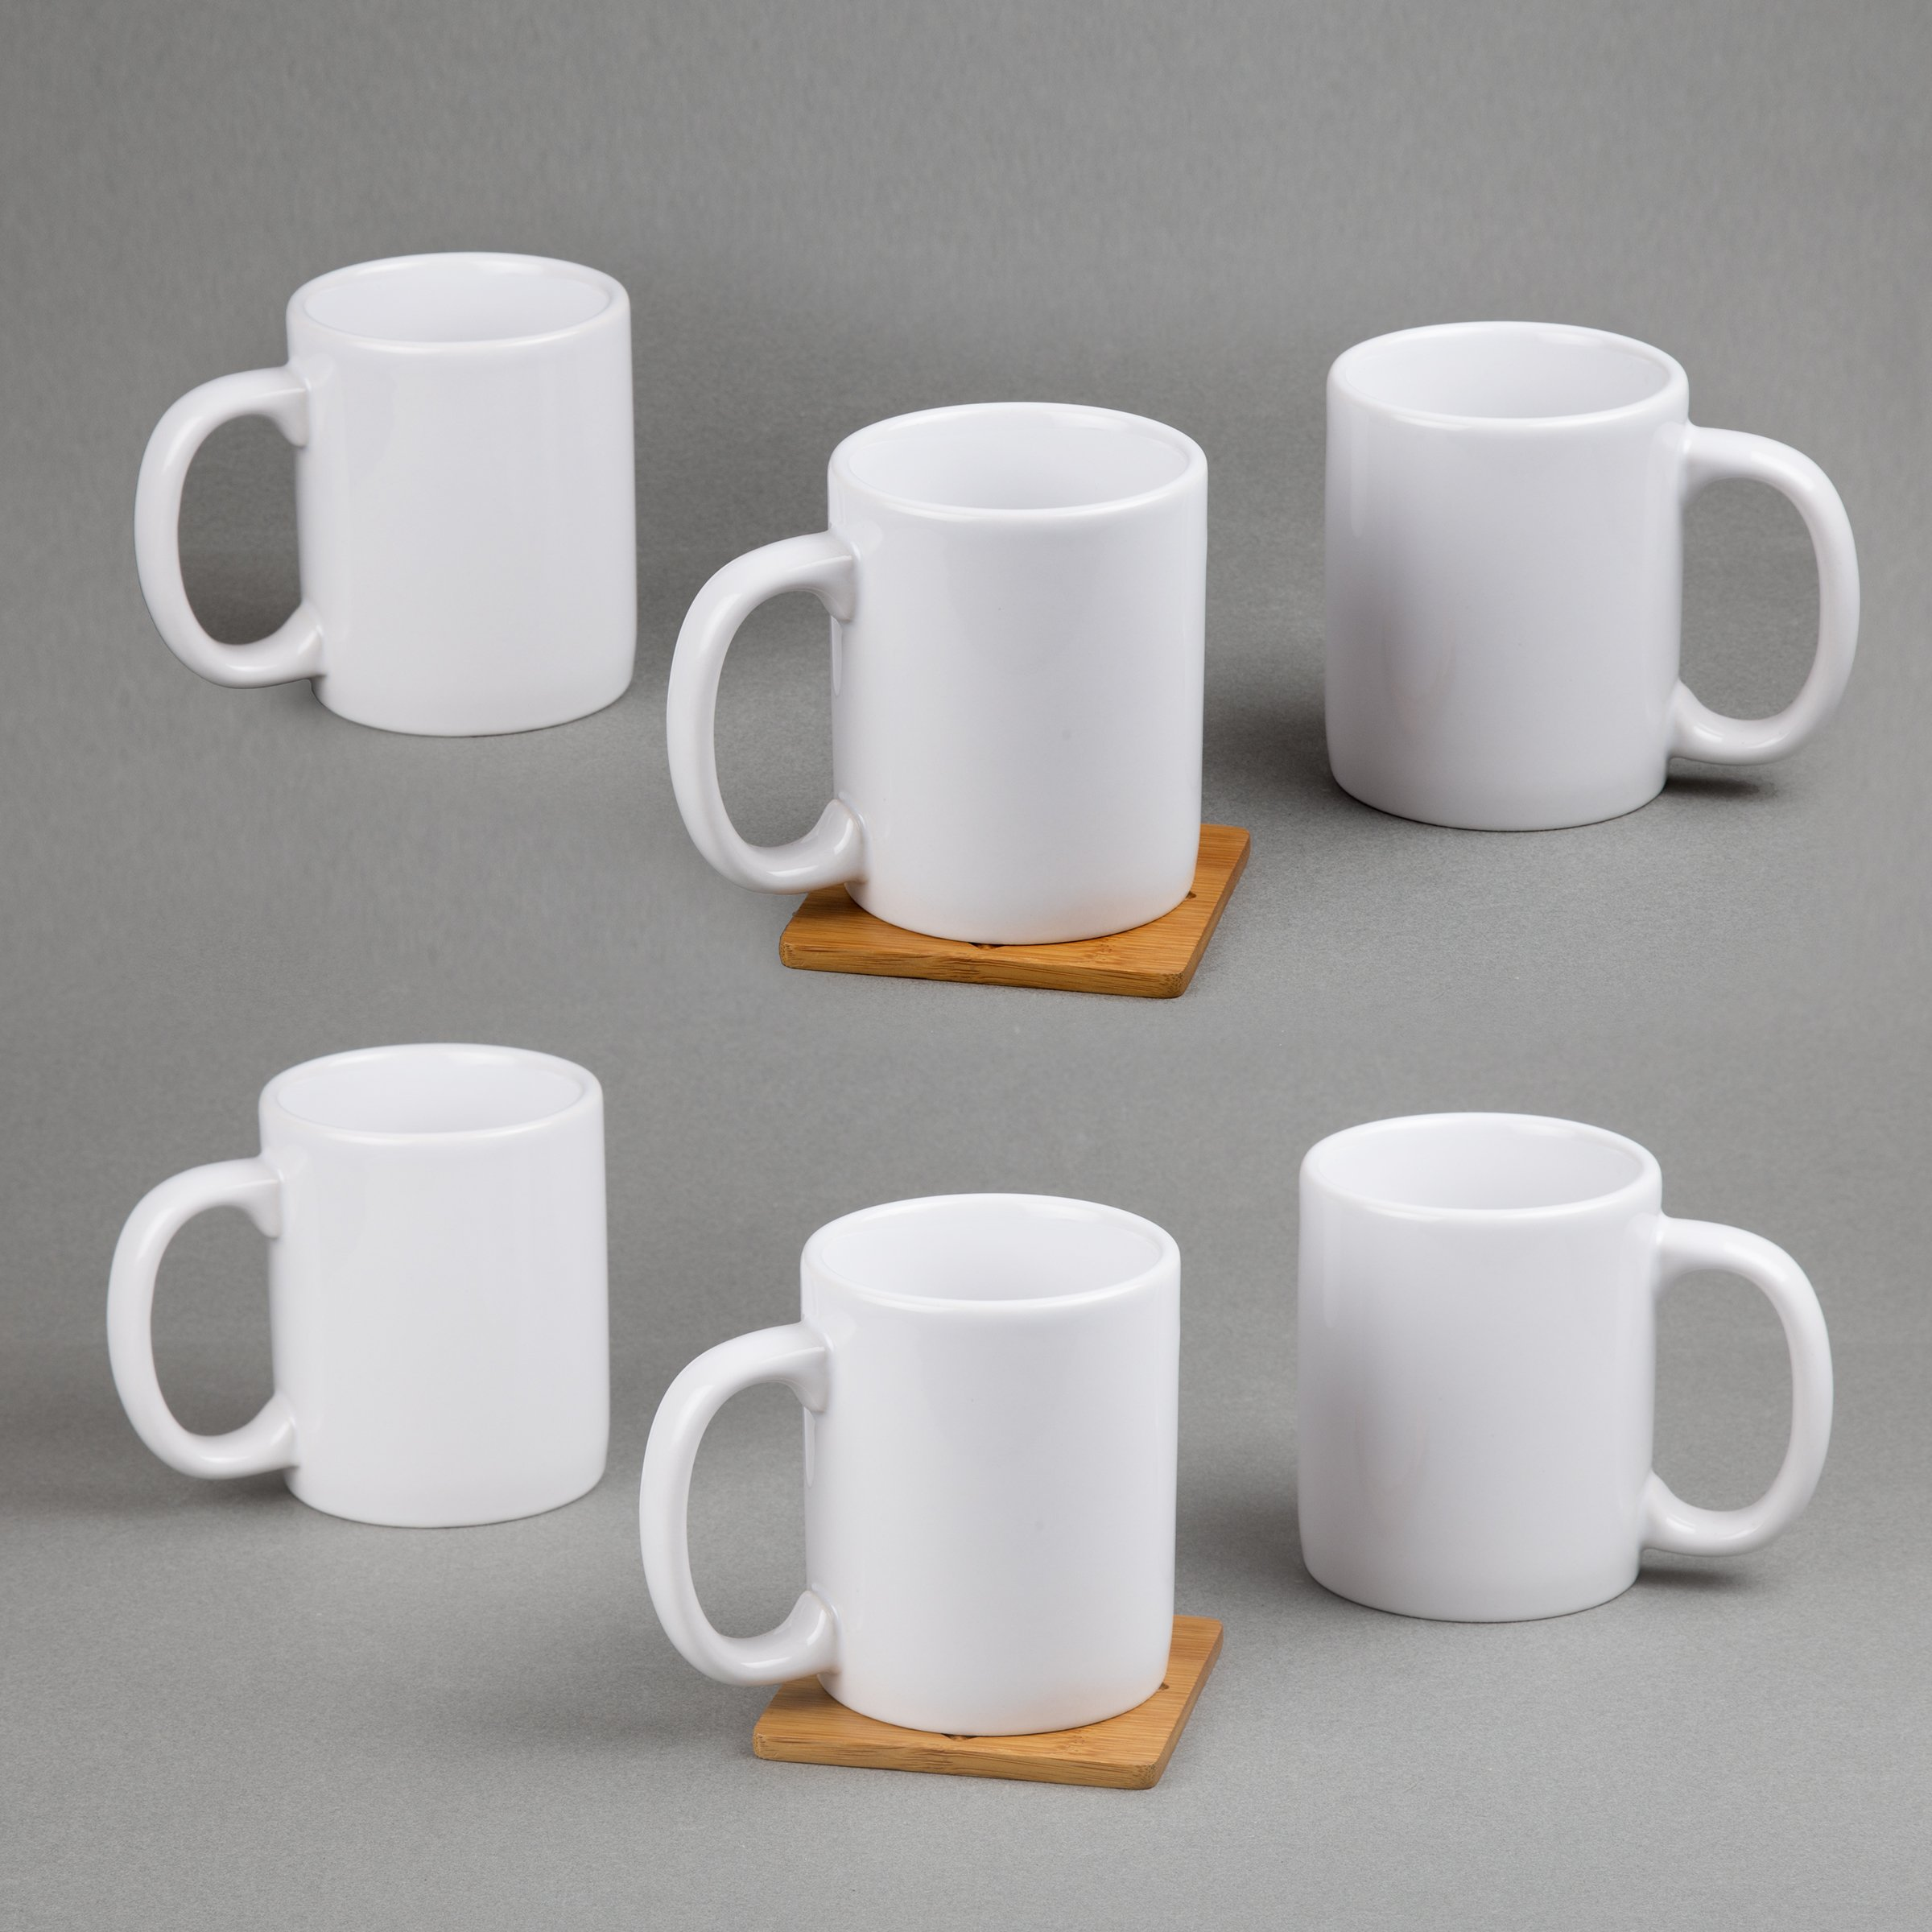 Creative Home 85355 Set of 6 Piece, 12 Oz Ceramic Coffee Mug Tea Cup, 3-1/4'' D x 4'' H, White by Creative Home (Image #5)